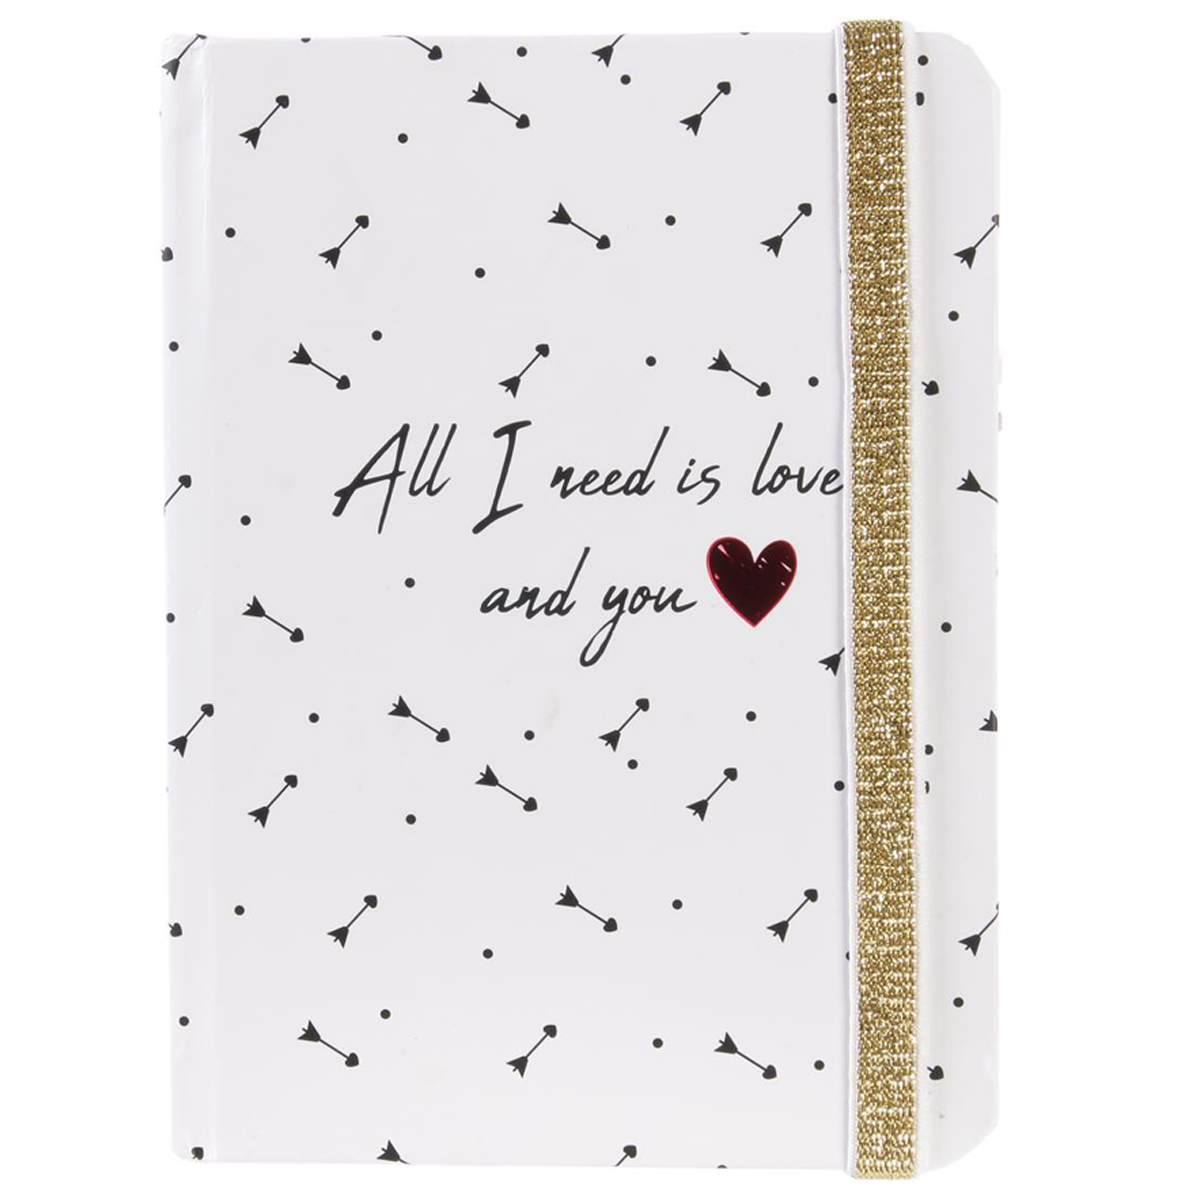 Carnet A6 \'Mots d\'Amour\' blanc (All i need is love and you) - 15x11x1 cm - [Q5427]